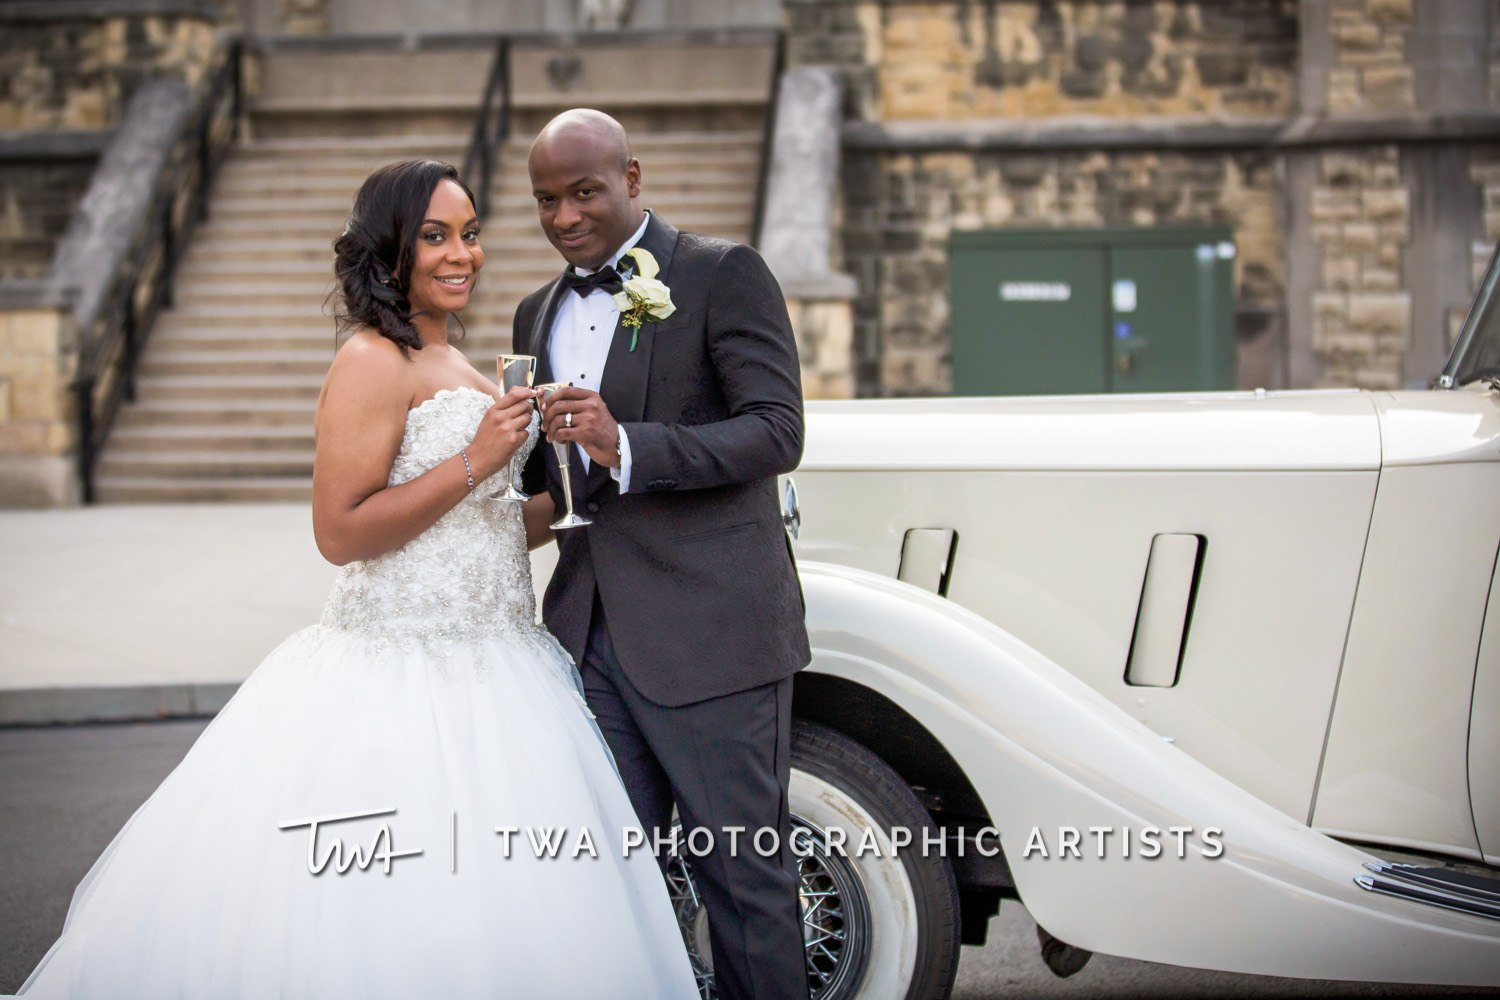 Chicago-Wedding-Photographer-TWA-Photographic-Artists-Haley-Mansion_Graves_Moffett_JM-12-0399